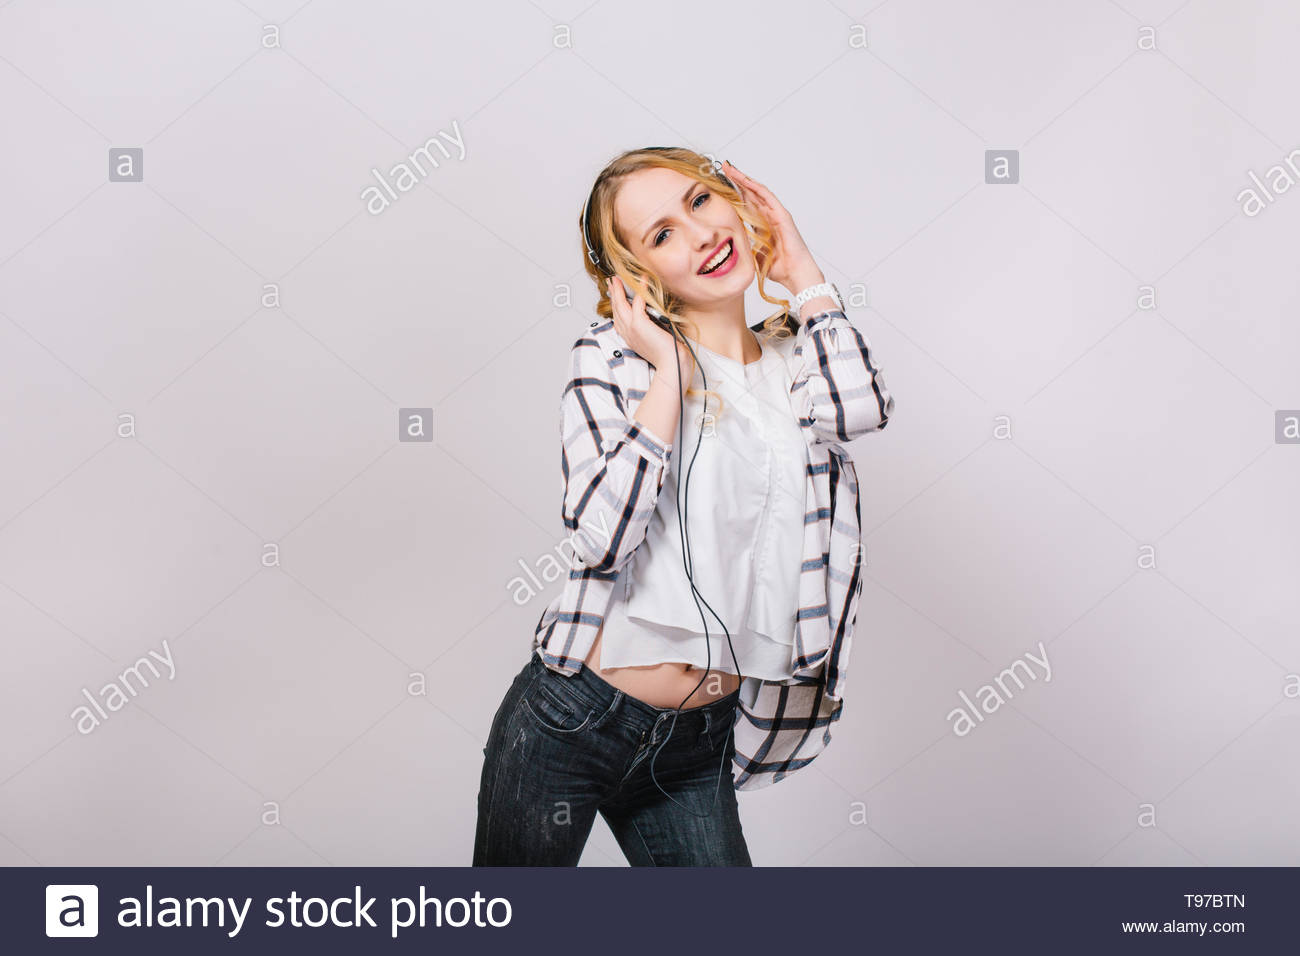 Stylish photo of mirthful attractive slim girl listening to favorite music and dancing near grey wall. Beautiful happy woman wearing casual plaid shirt and black jeans. Cheerful and satisfied. - Stock Image